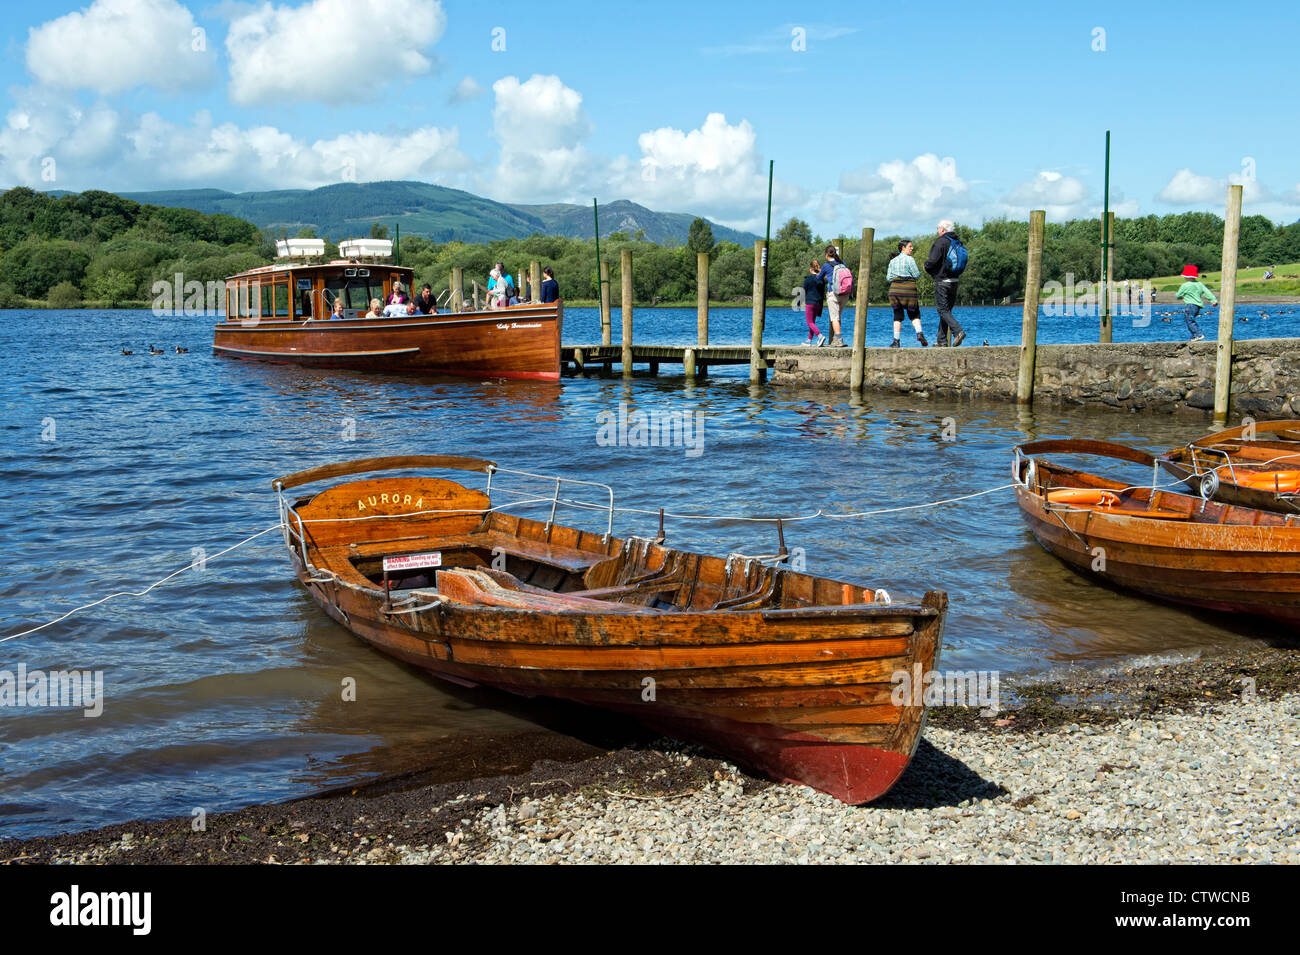 Tourists on a ferry with rowing boats in the foreground on Derwentwater, Keswick in the Lake District, Cumbria Stock Photo